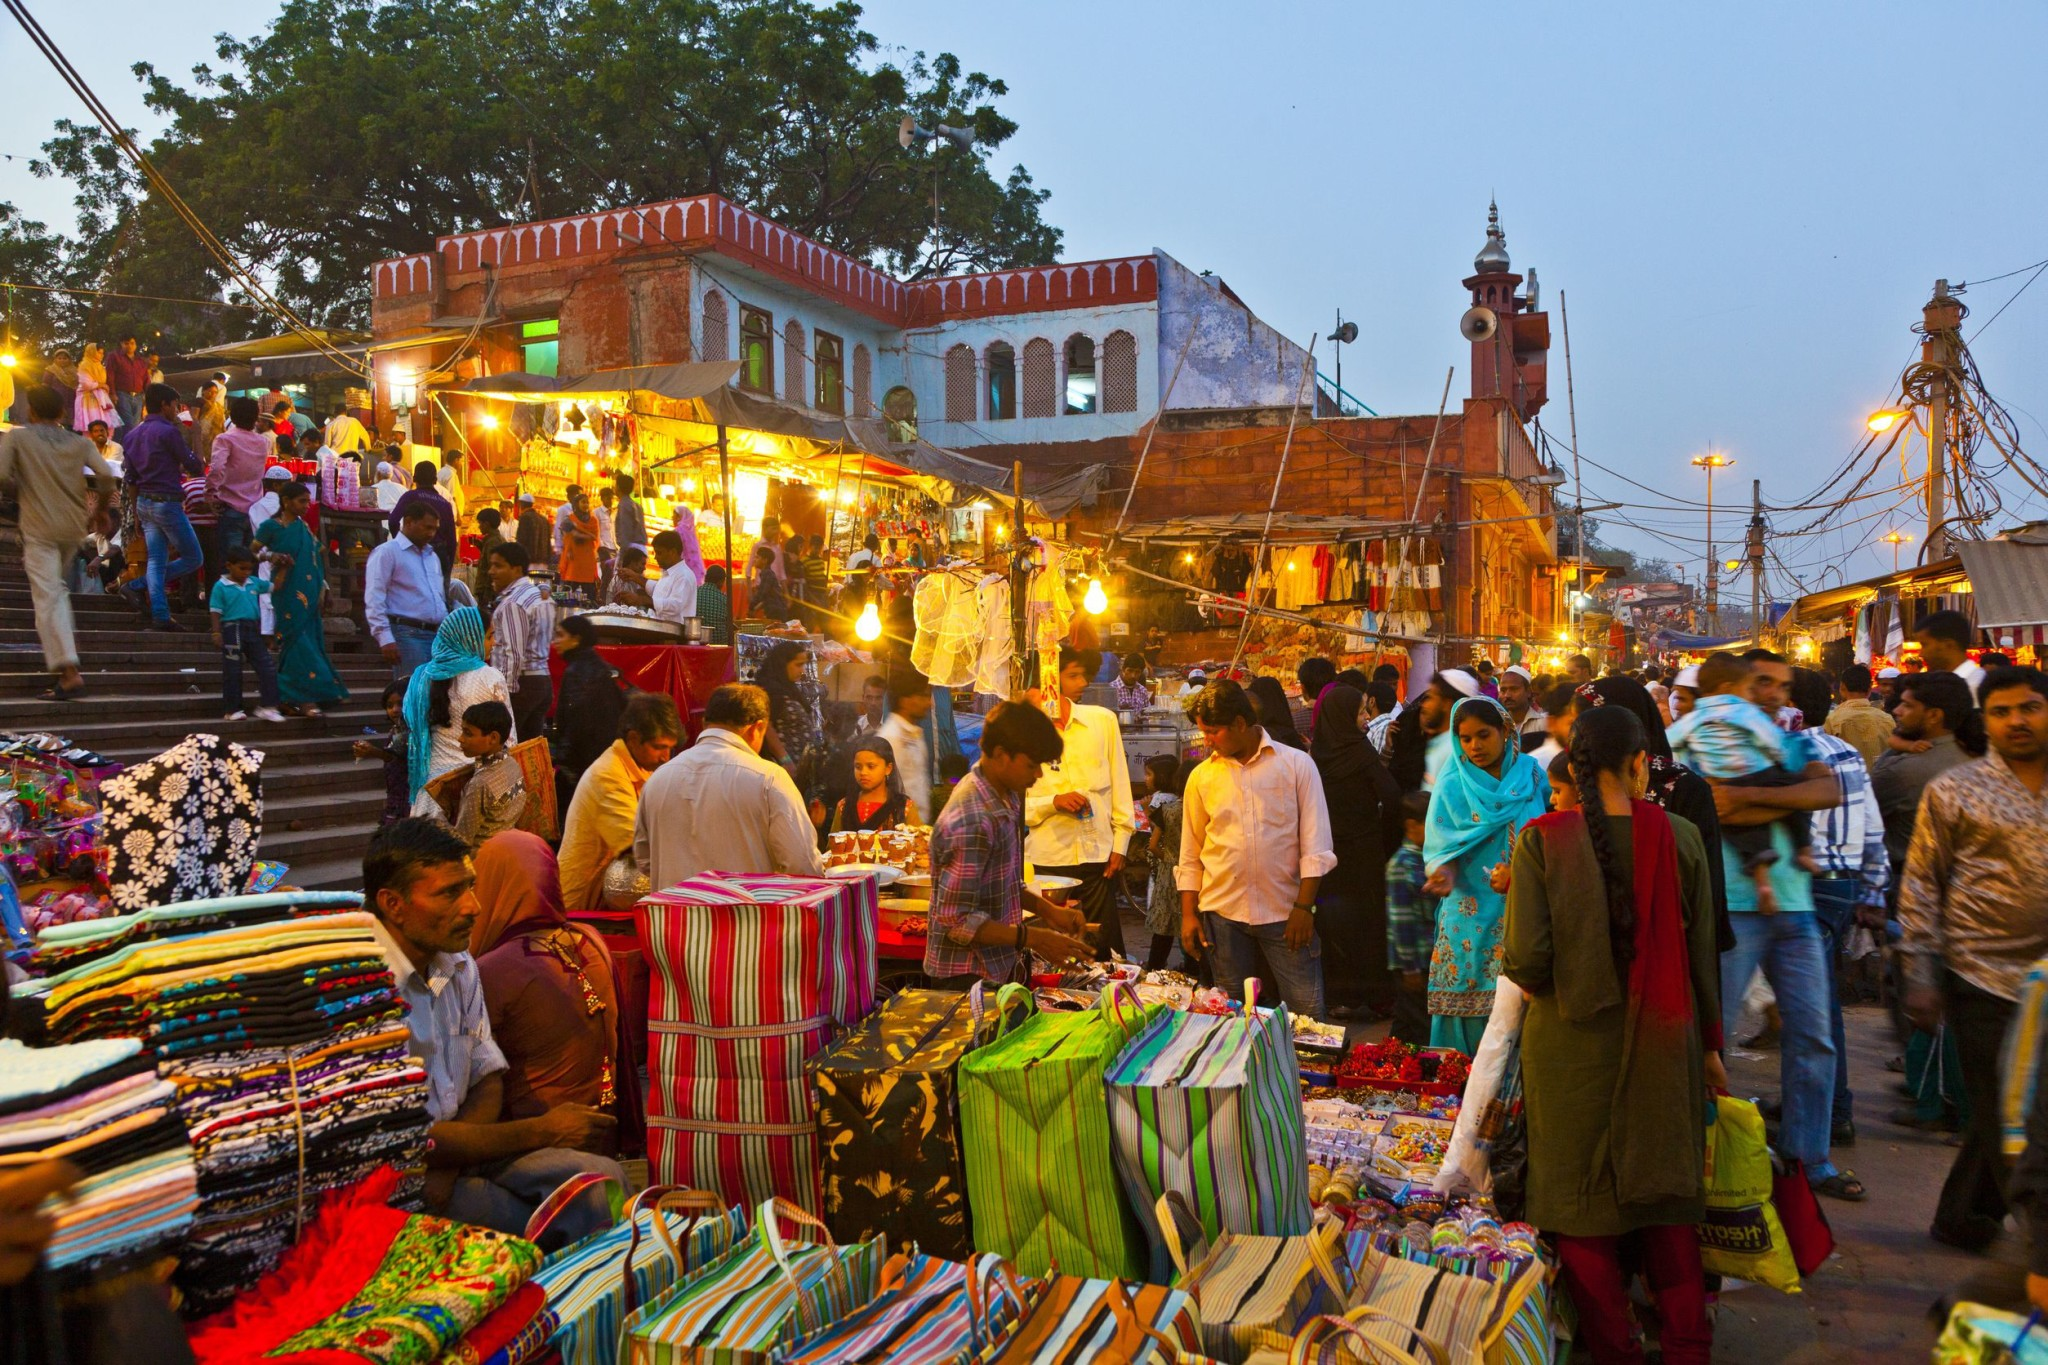 Meena-Bazaar-in-front-of-Jama-Mashid-mosque-in-Delhi-India.jpg